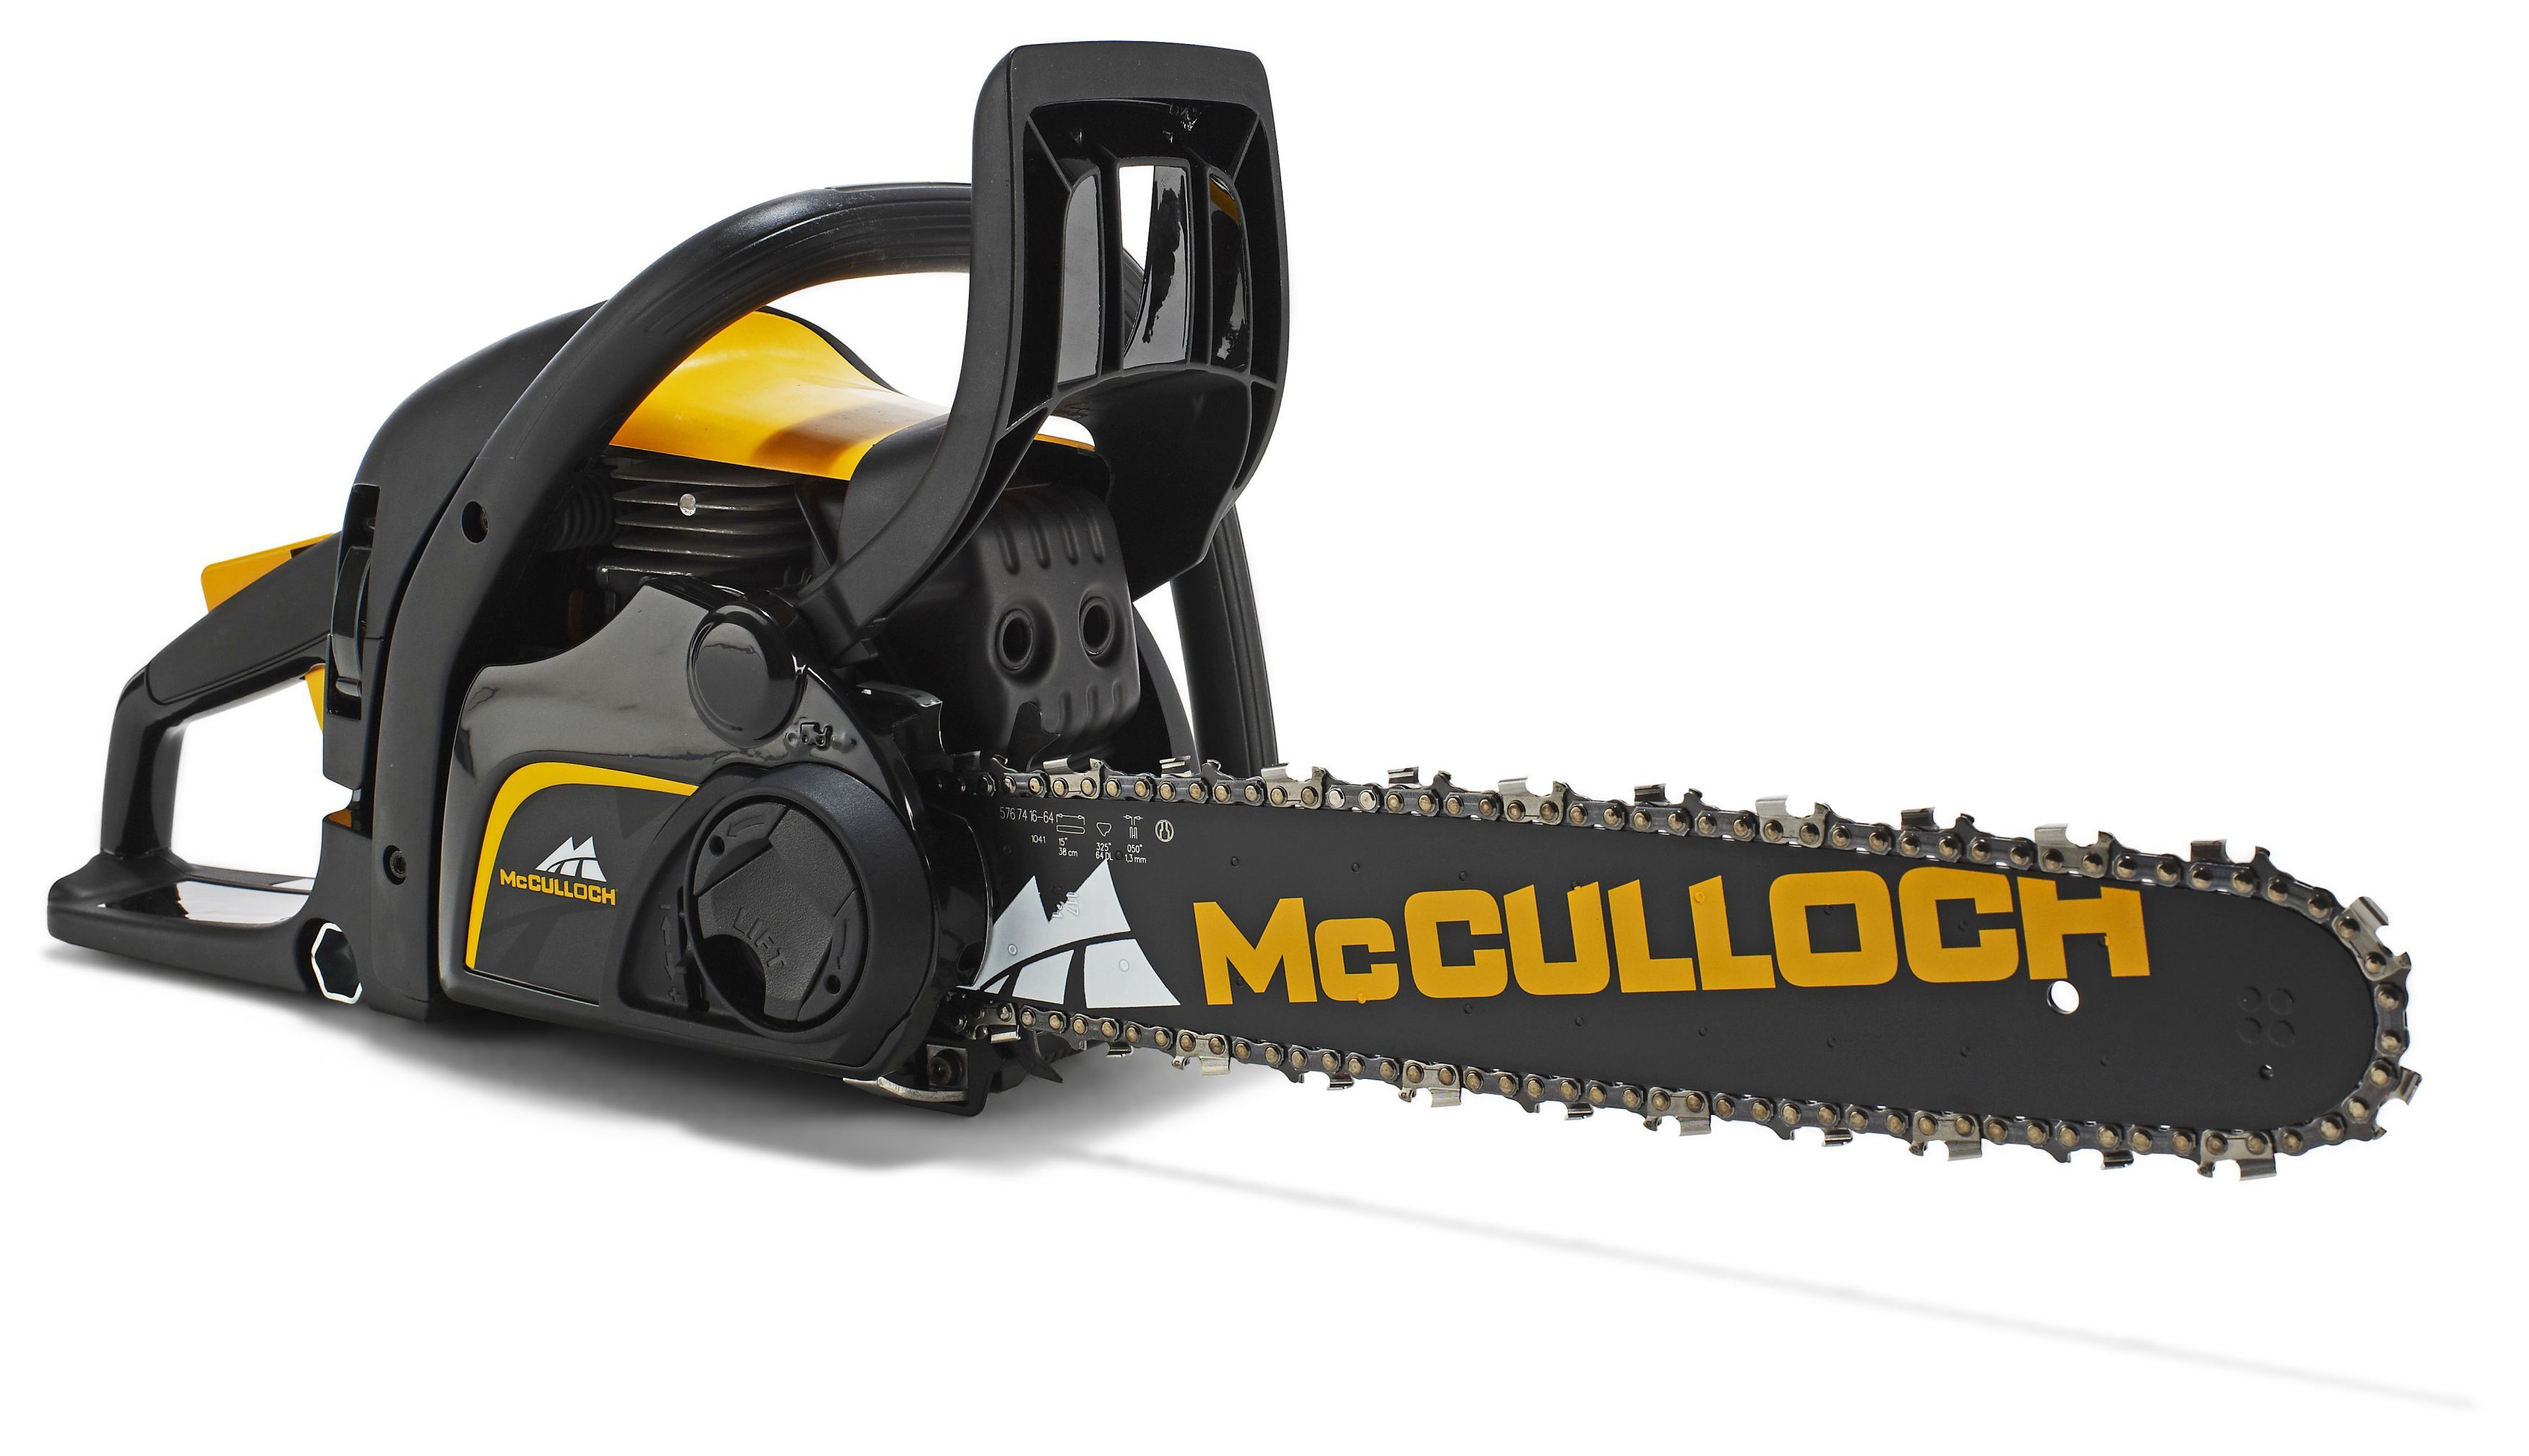 Mcculloch chainsaw mcculloch chainsaw cs 410 elite husqvarna ab mcculloch chainsaw mcculloch chainsaw cs 410 elite husqvarna ab keyboard keysfo Choice Image